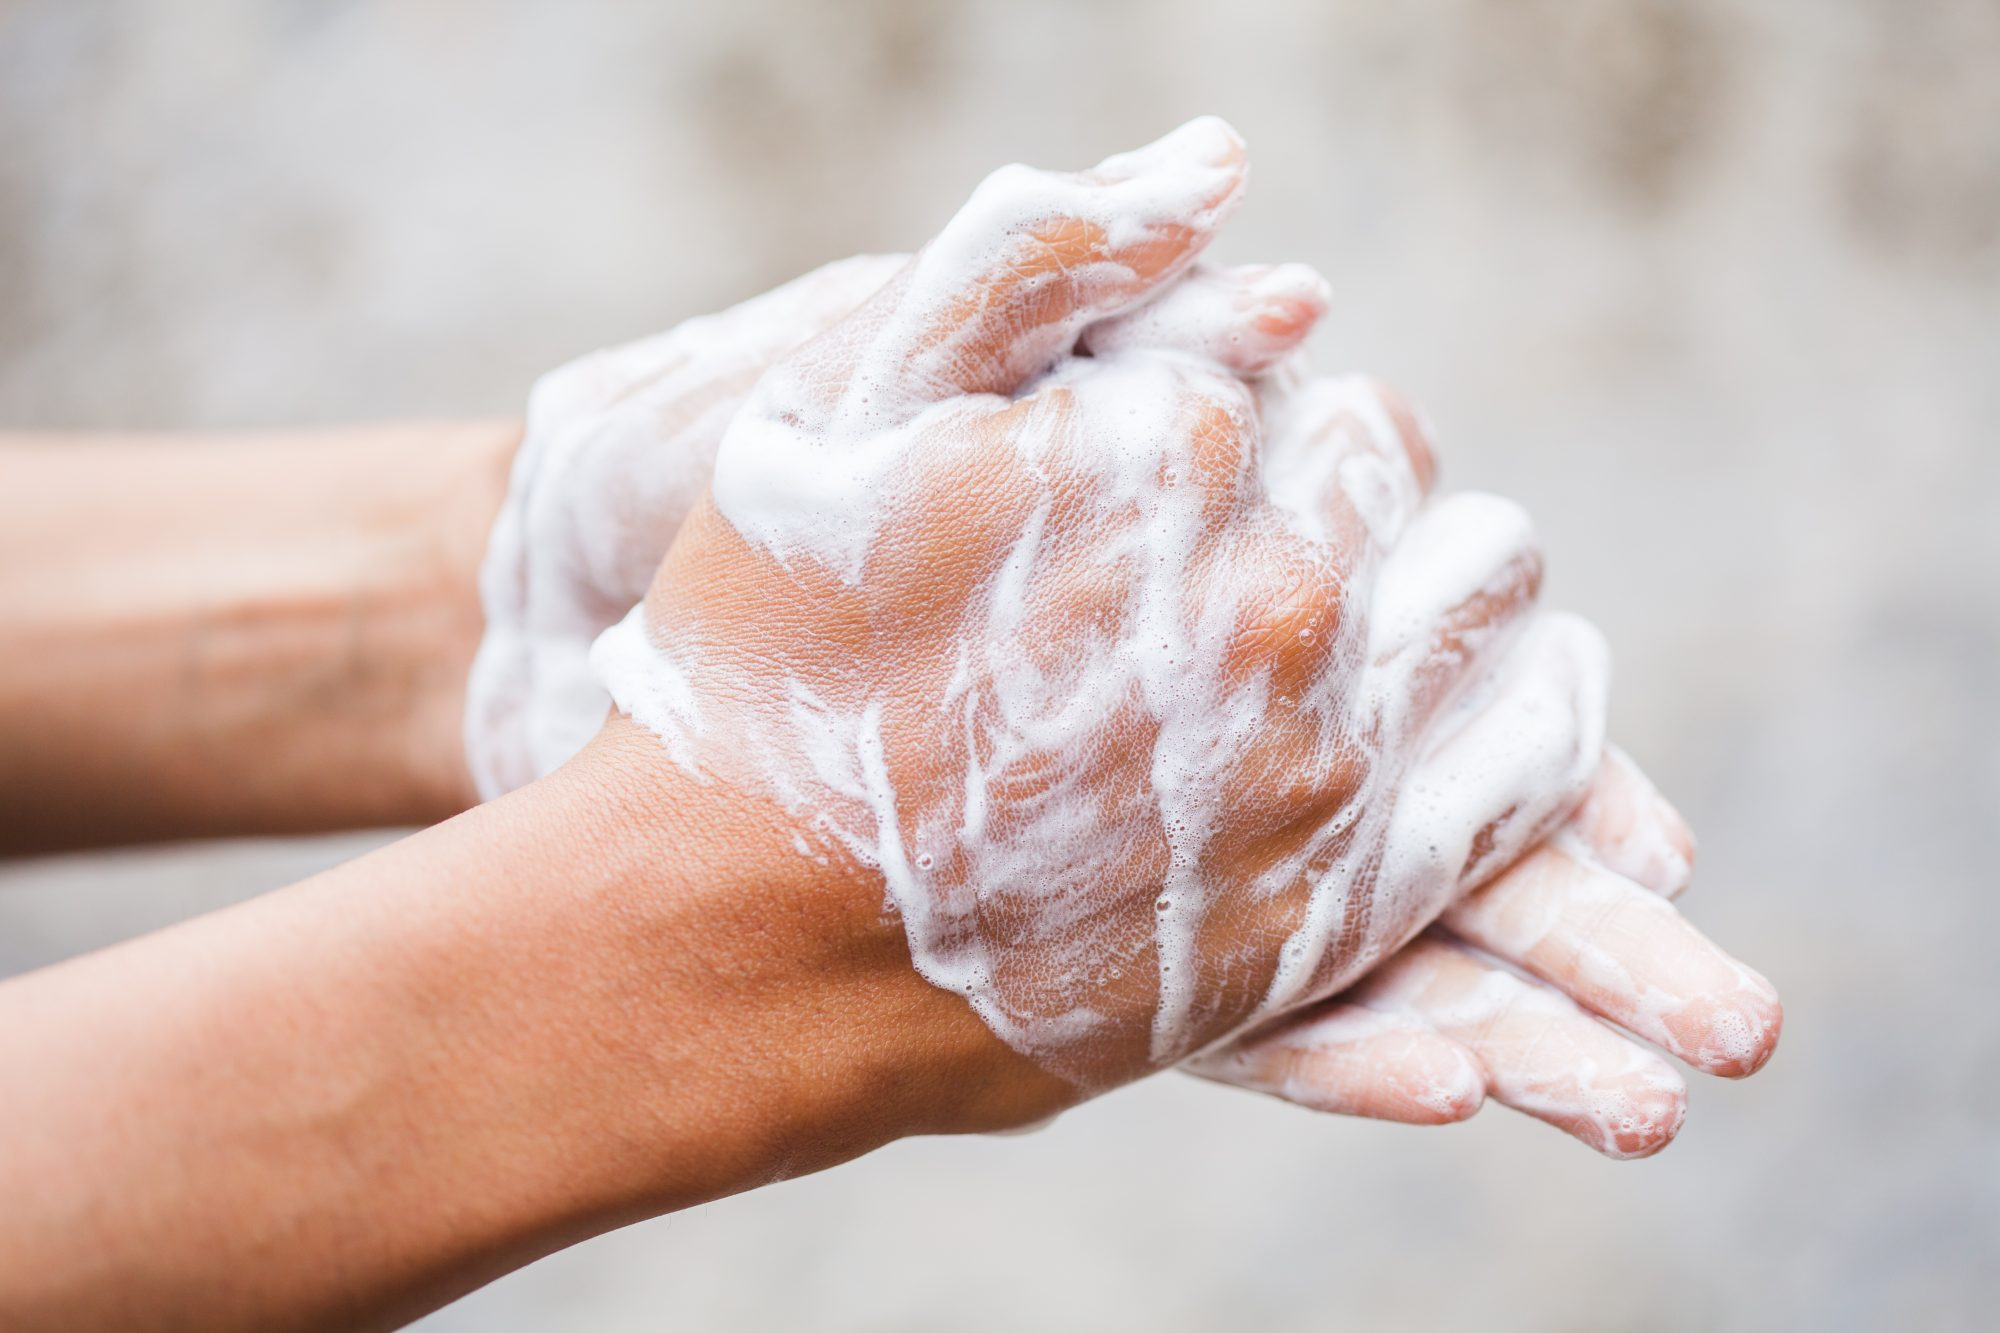 A man washing hands with soap